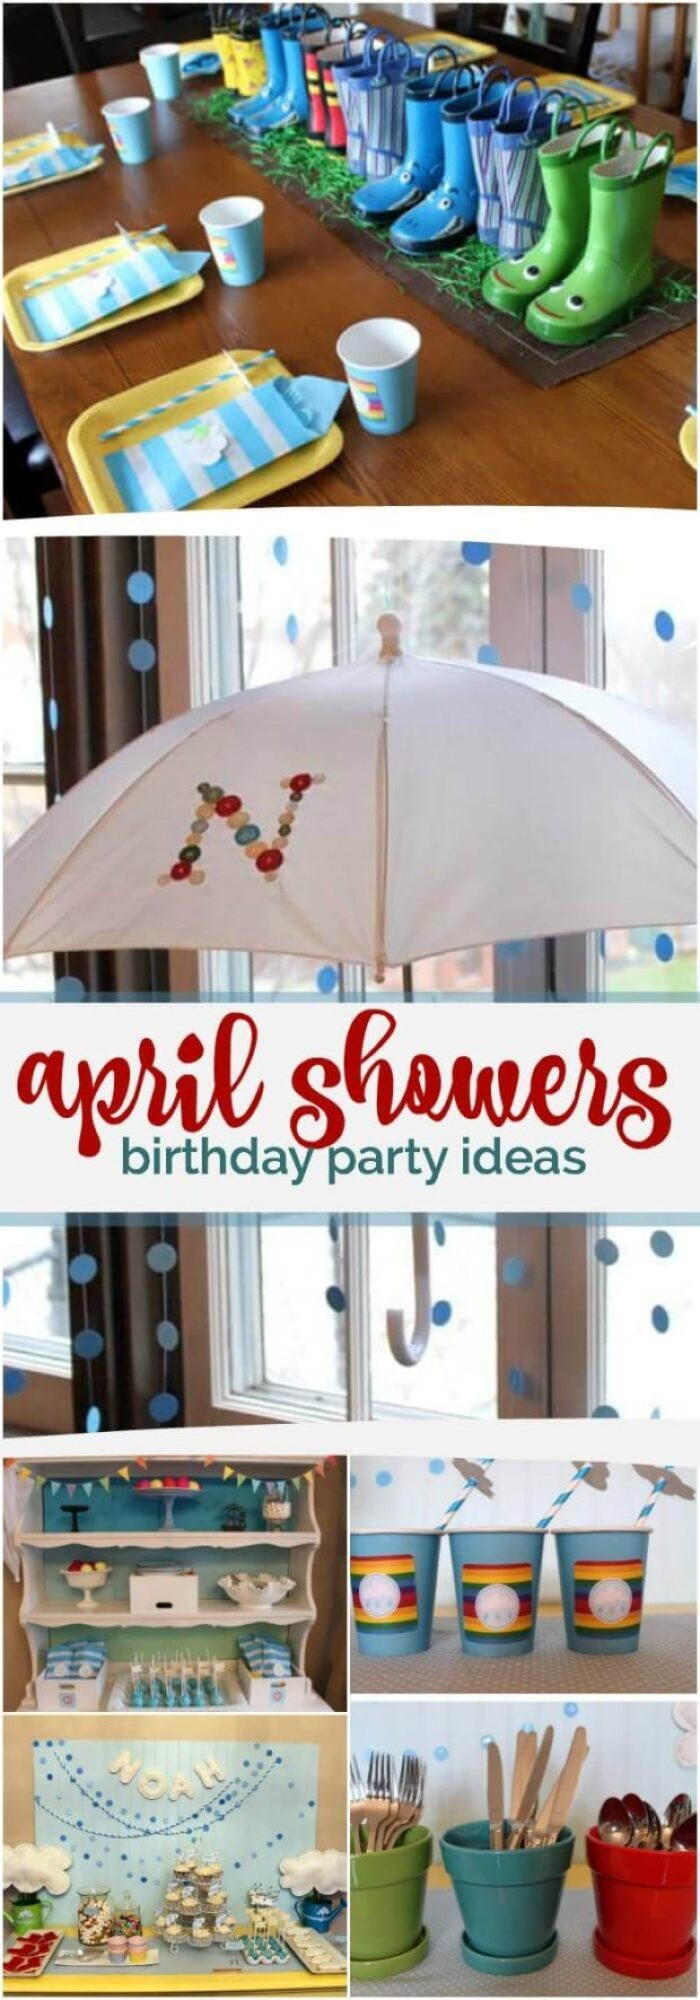 pinterest april showers birthday party